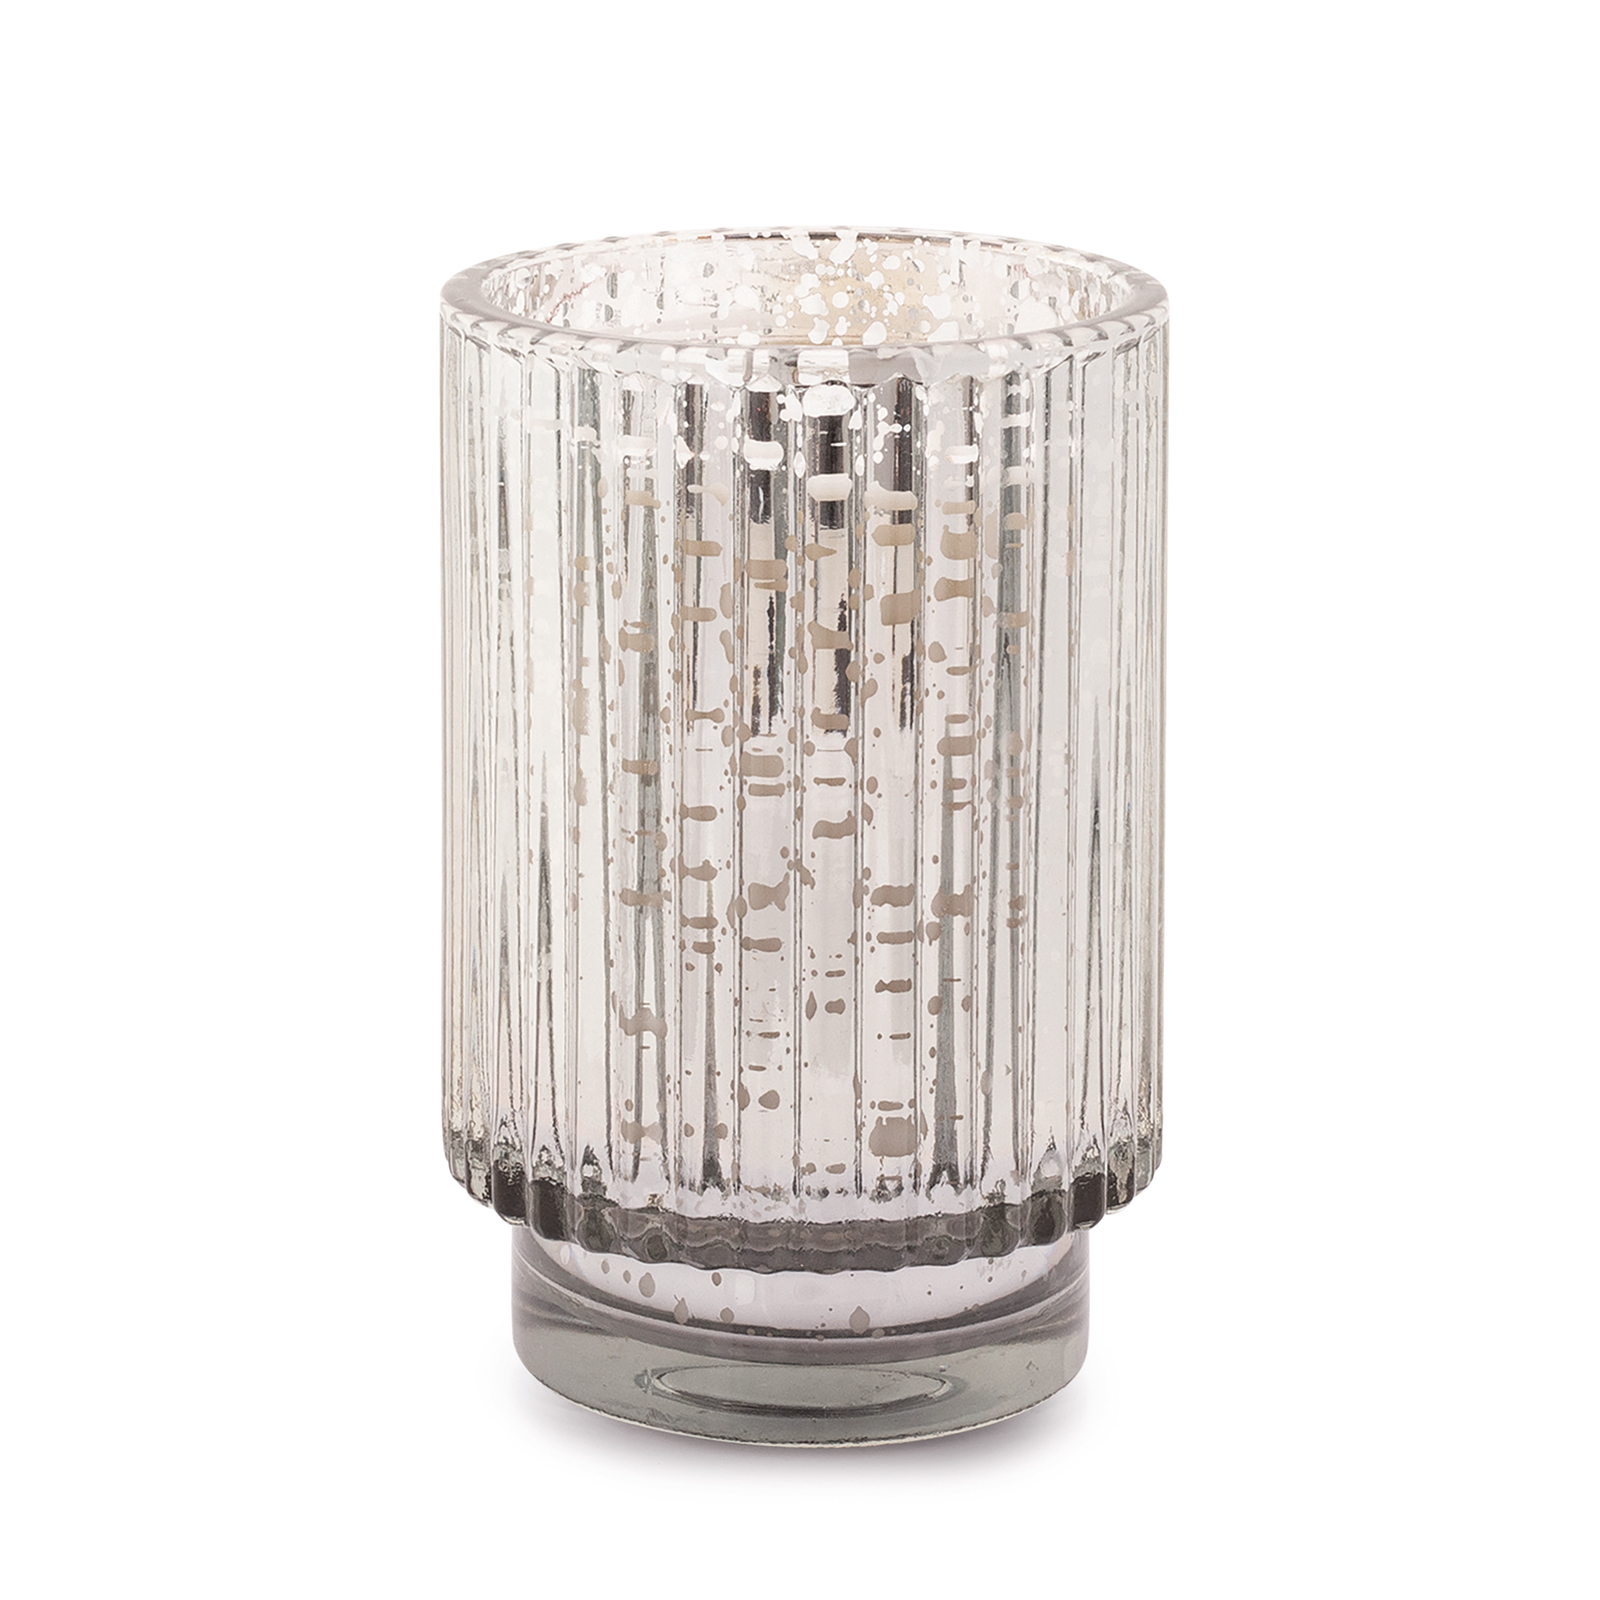 **PRE-ORDER** | Cypress & Fir - Paddywax Tall Silver Mercury Glass Soy Candle - 12oz